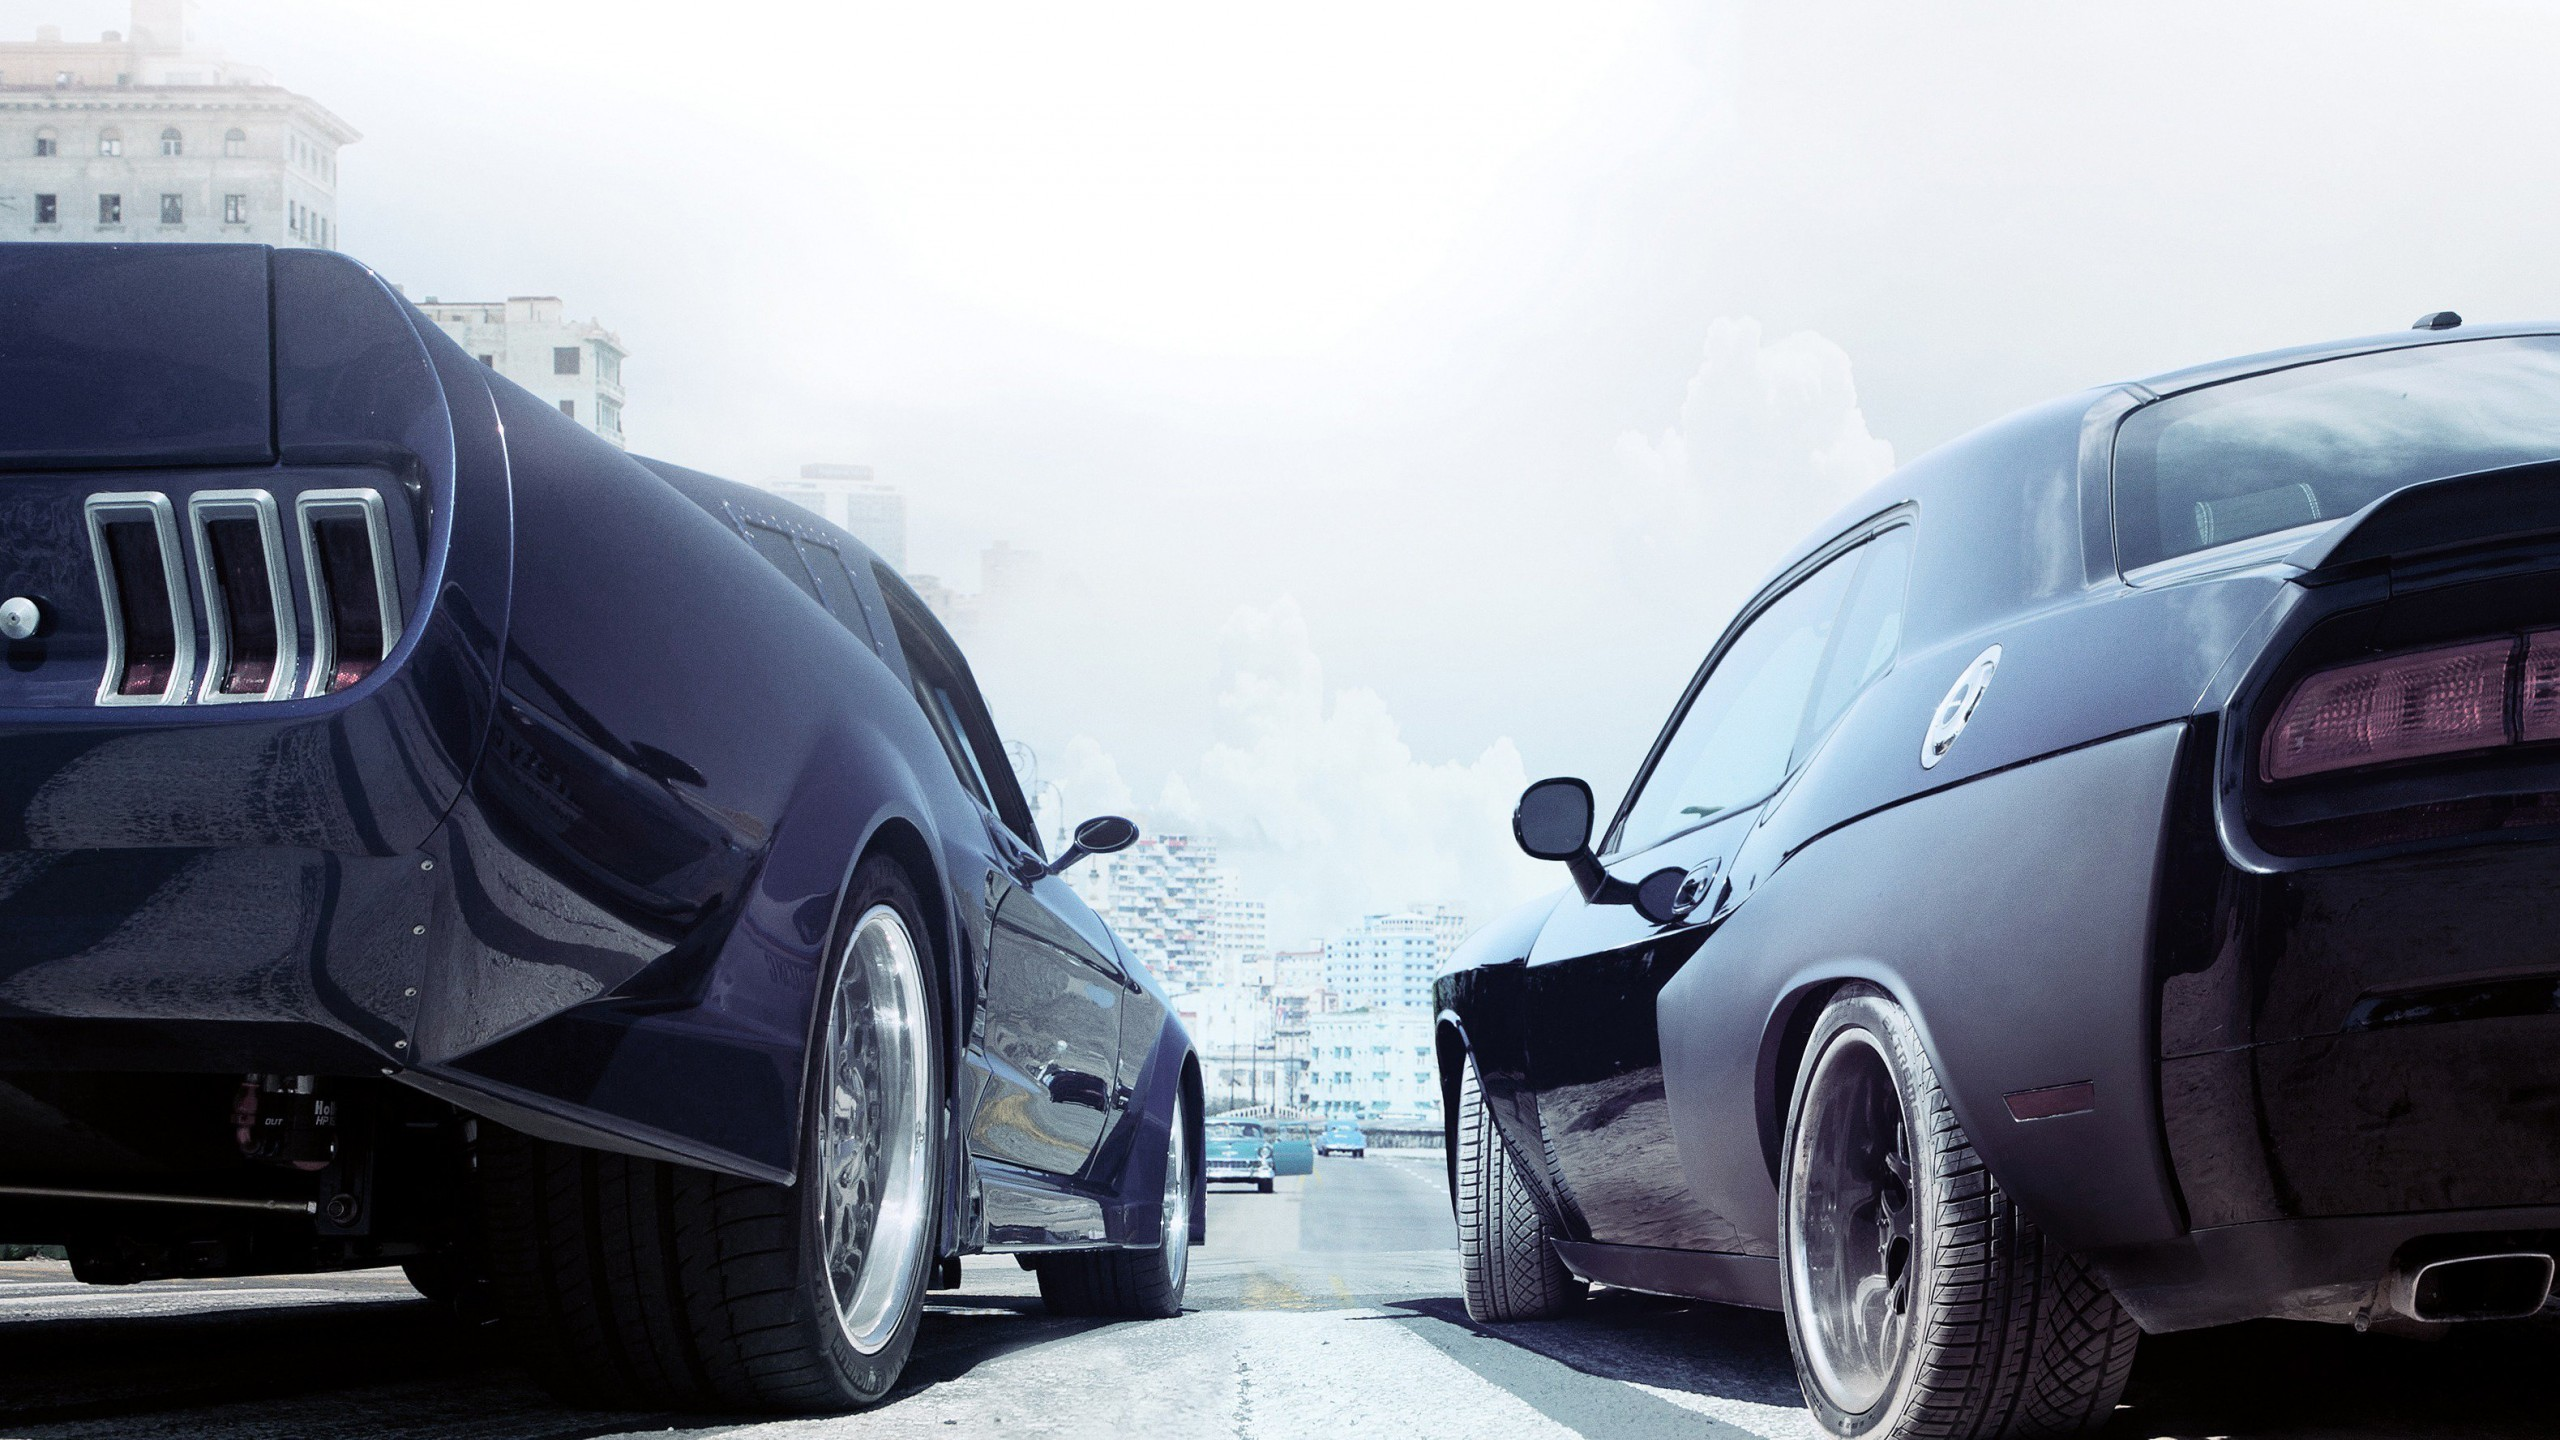 Fast-And-Furious-Cars-wallpaper-wp400110